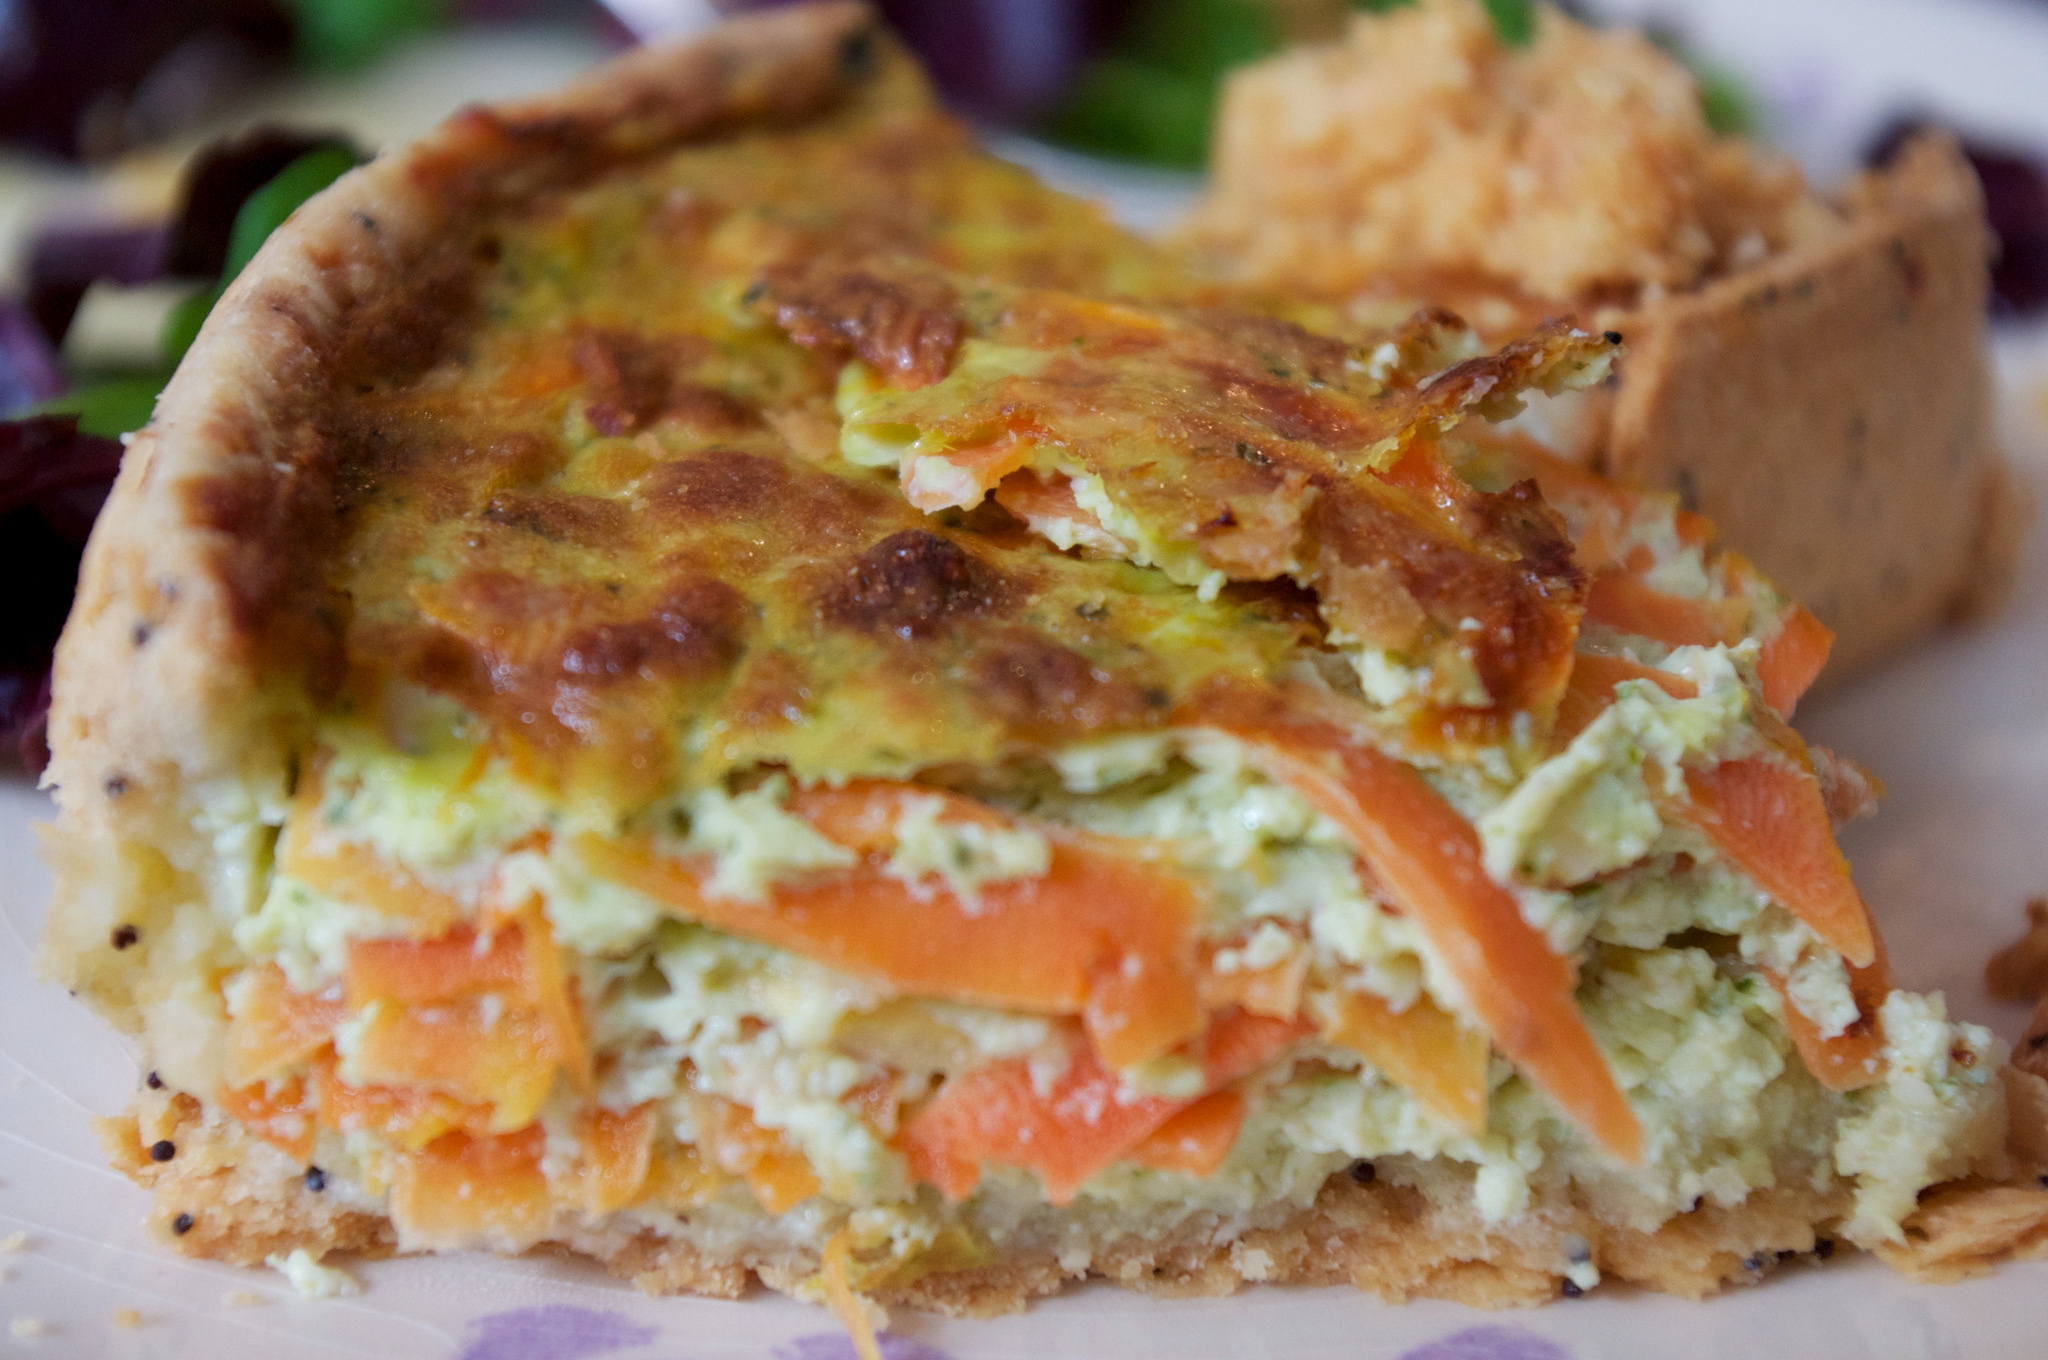 Savoury carrot tart from Tartes Kluger in Paris. Photo by alphacityguides.